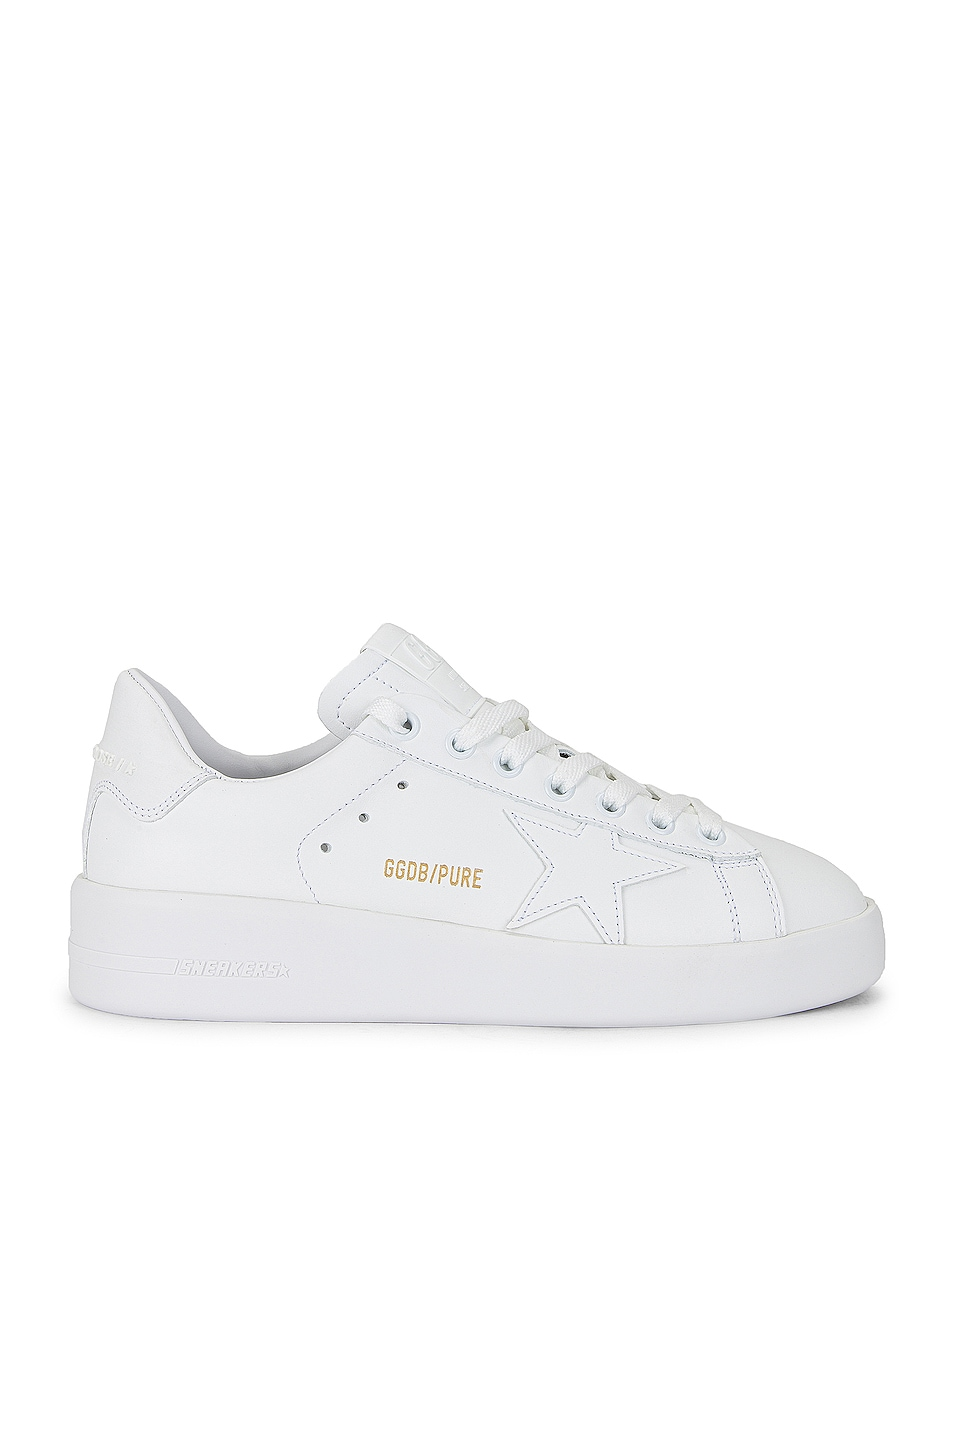 Image 1 of Golden Goose Pure Star Sneaker in Optic White